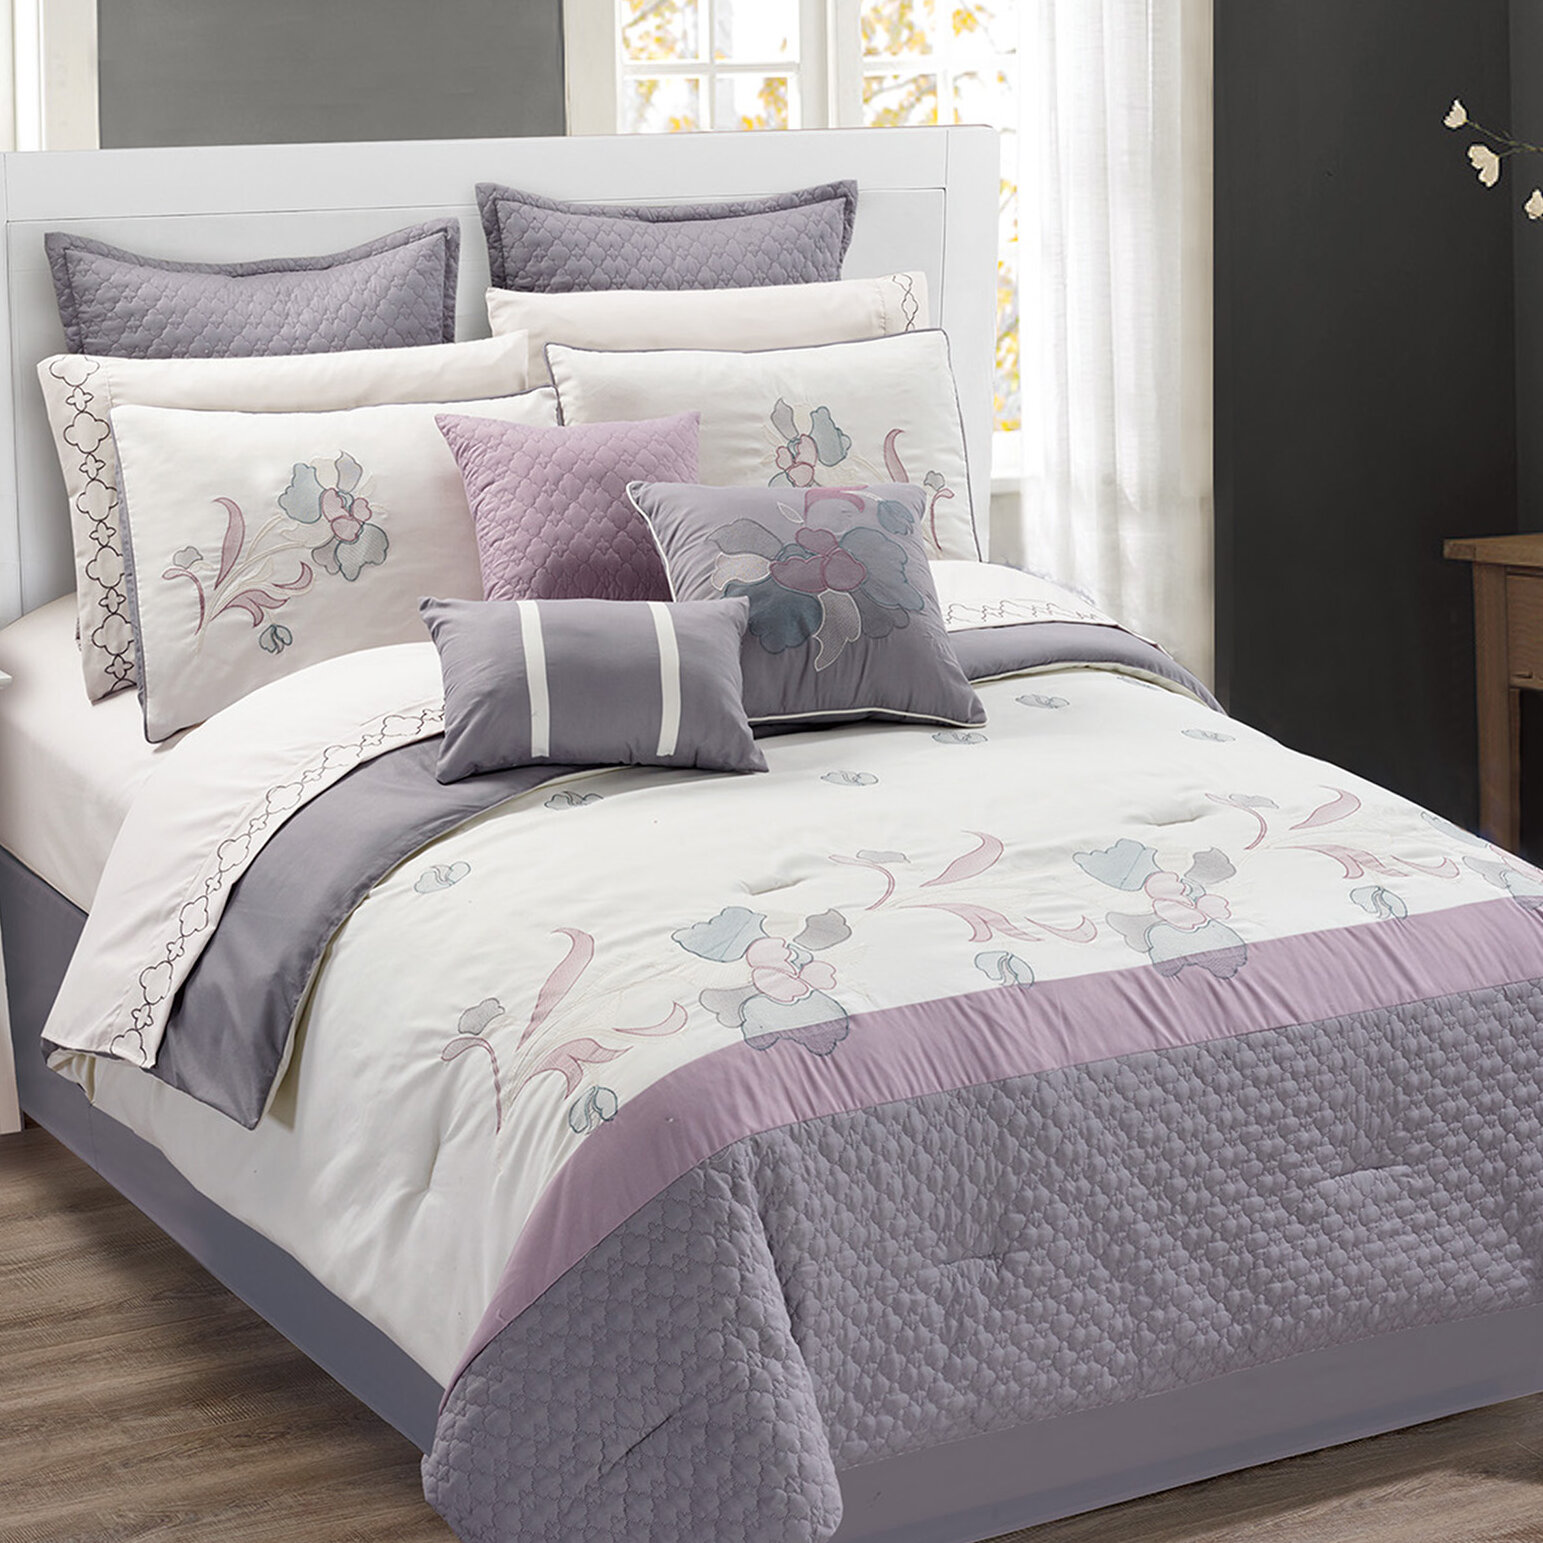 comforter bath set shipping bedding sadie mi product on zone overstock over free orders lilac piece